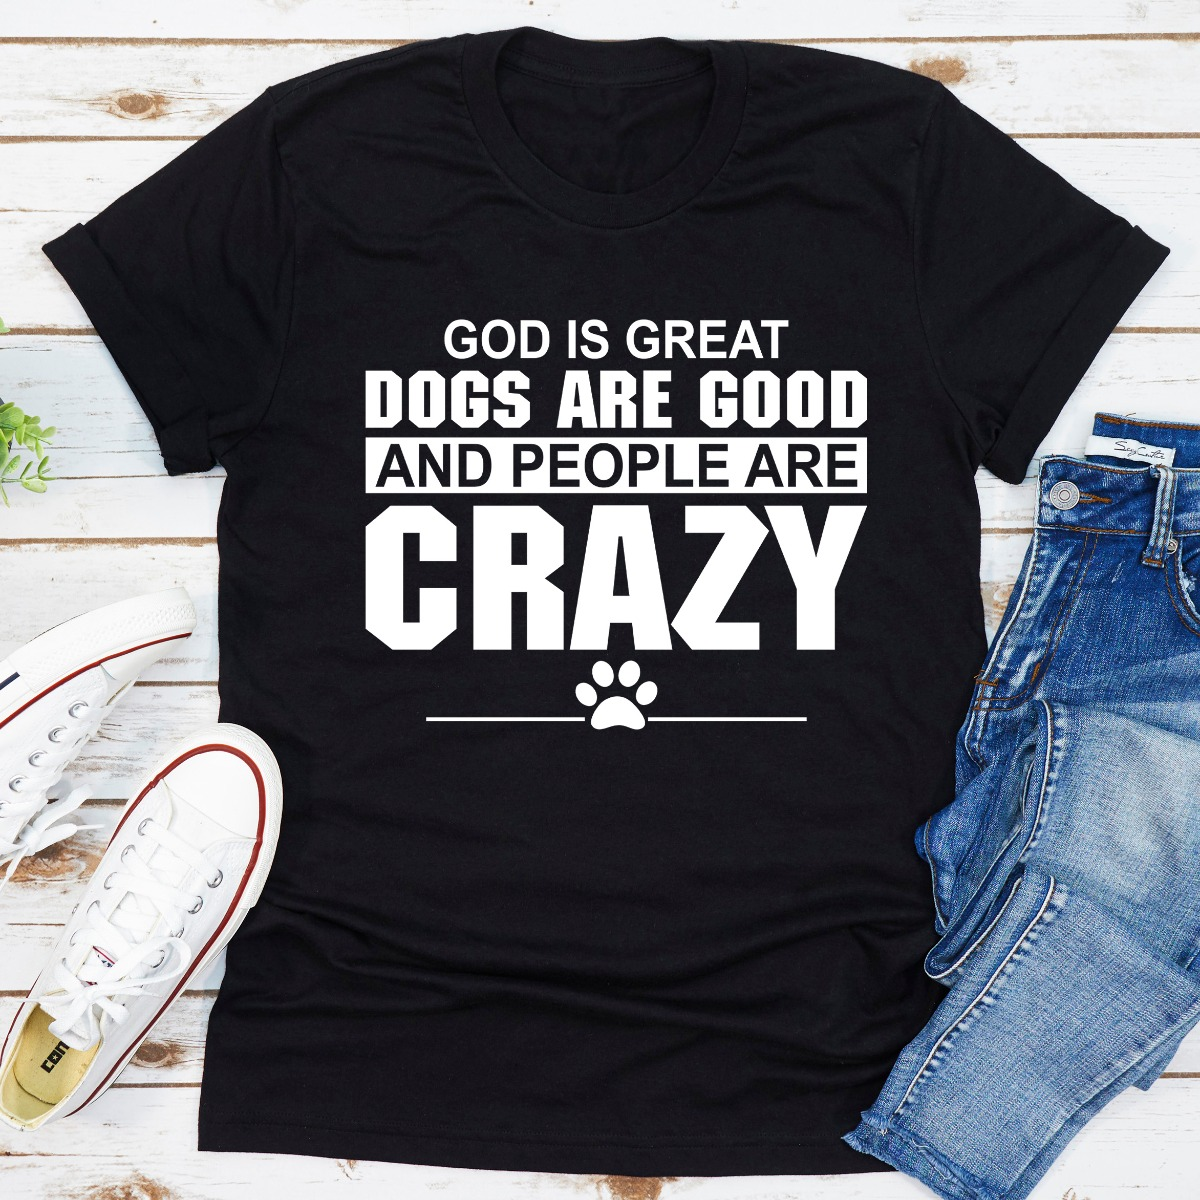 God Is Great Dogs Are Good And People Are Crazy (Black / L)